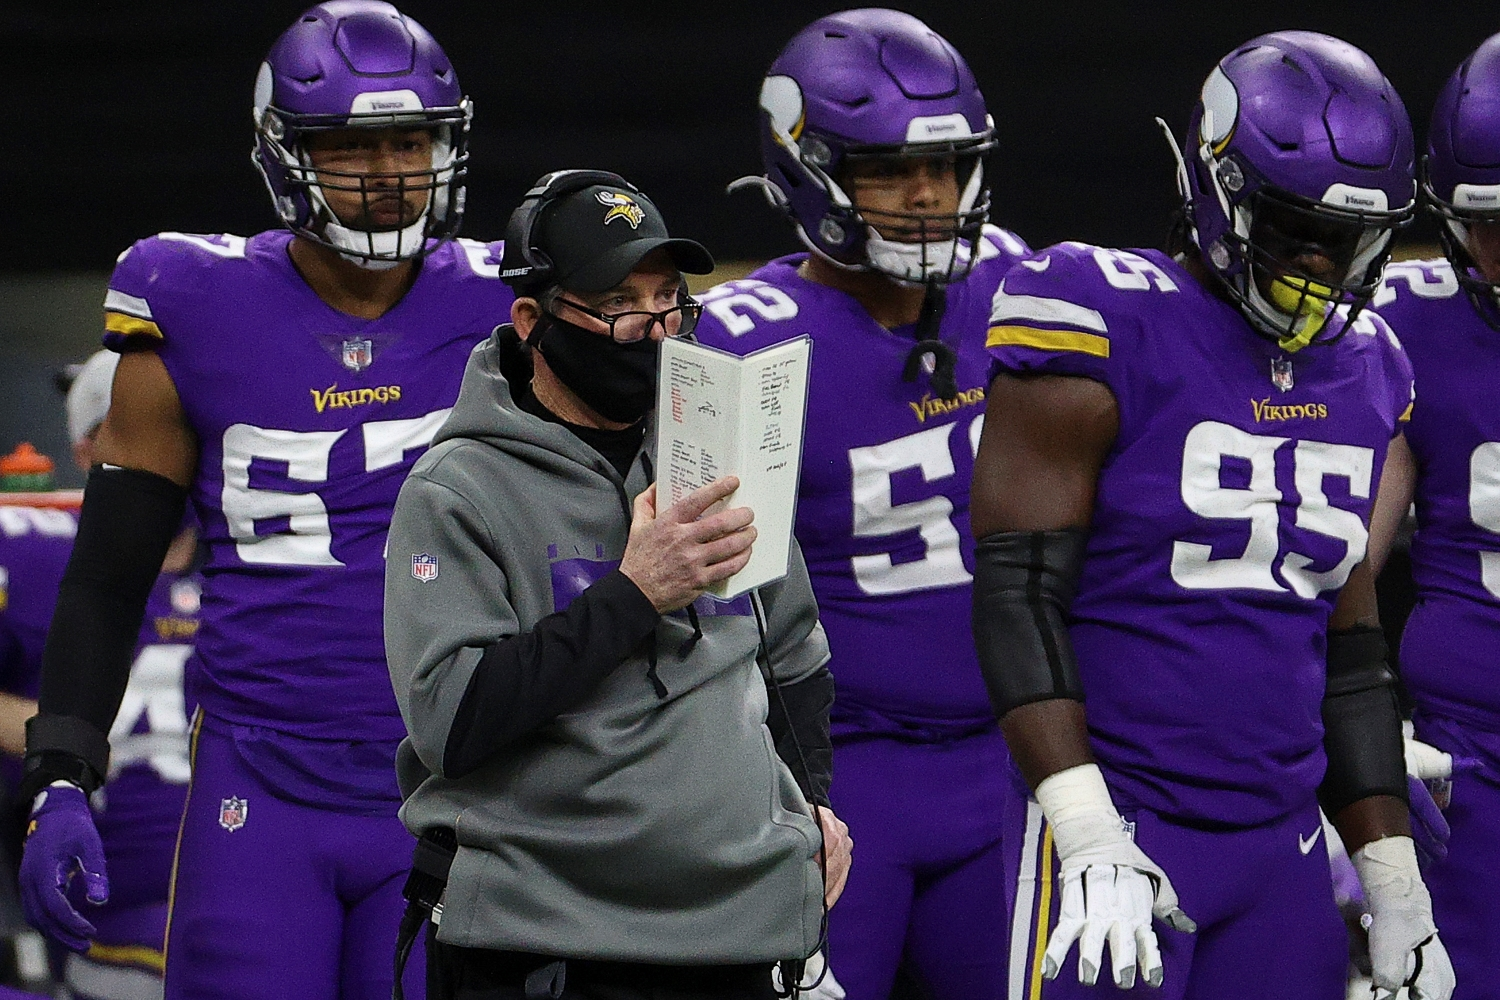 Vikings head coach Mike Zimmer didn't mince words when talking about how his 2020 Vikings defense compares to his previous defensive units.